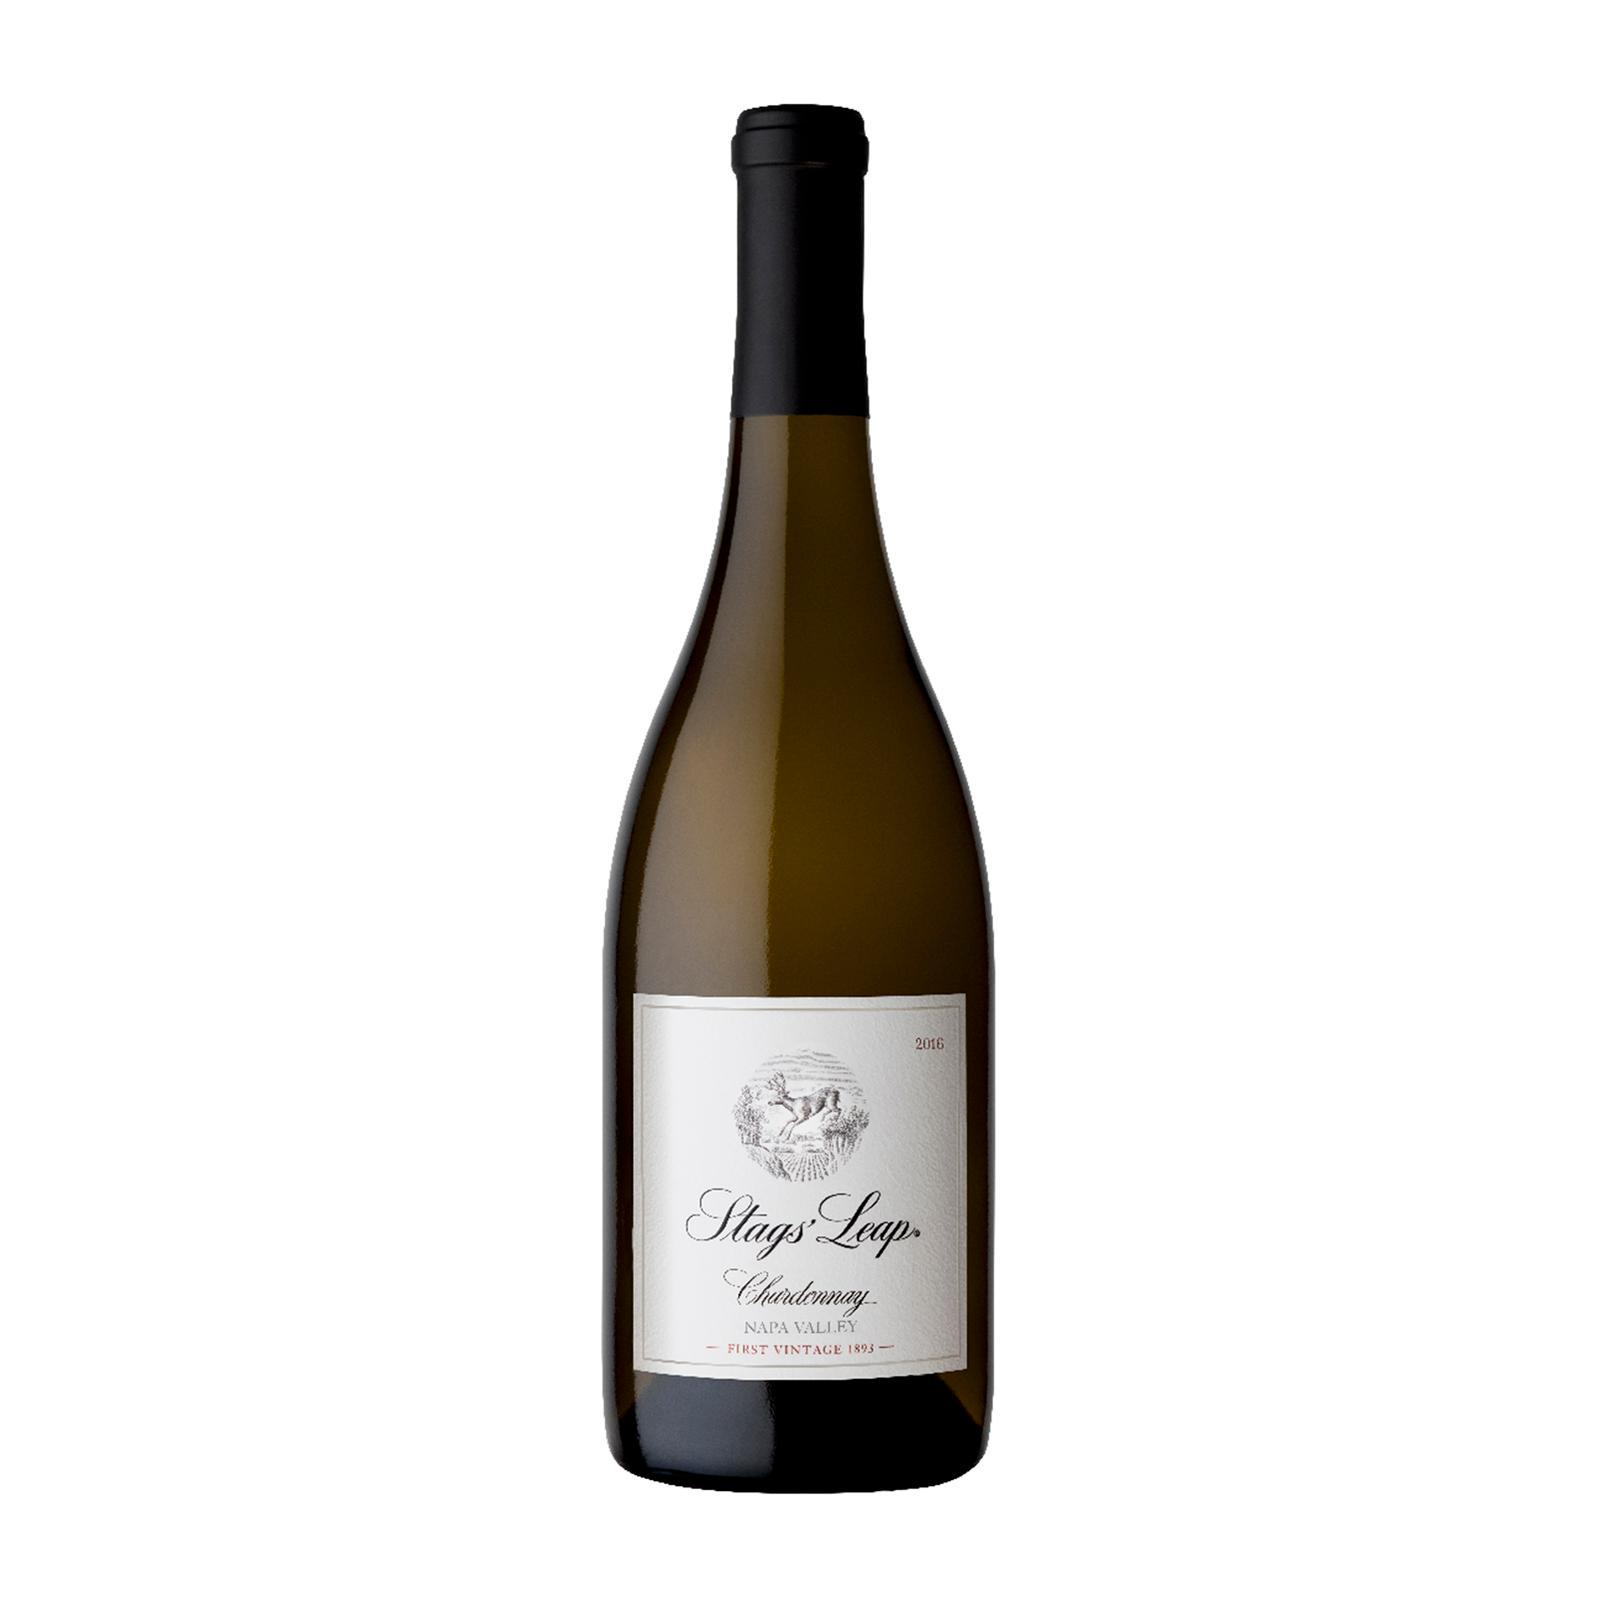 Stags Leap Napa Valley Chardonnay 90 Points - By Wine Collection